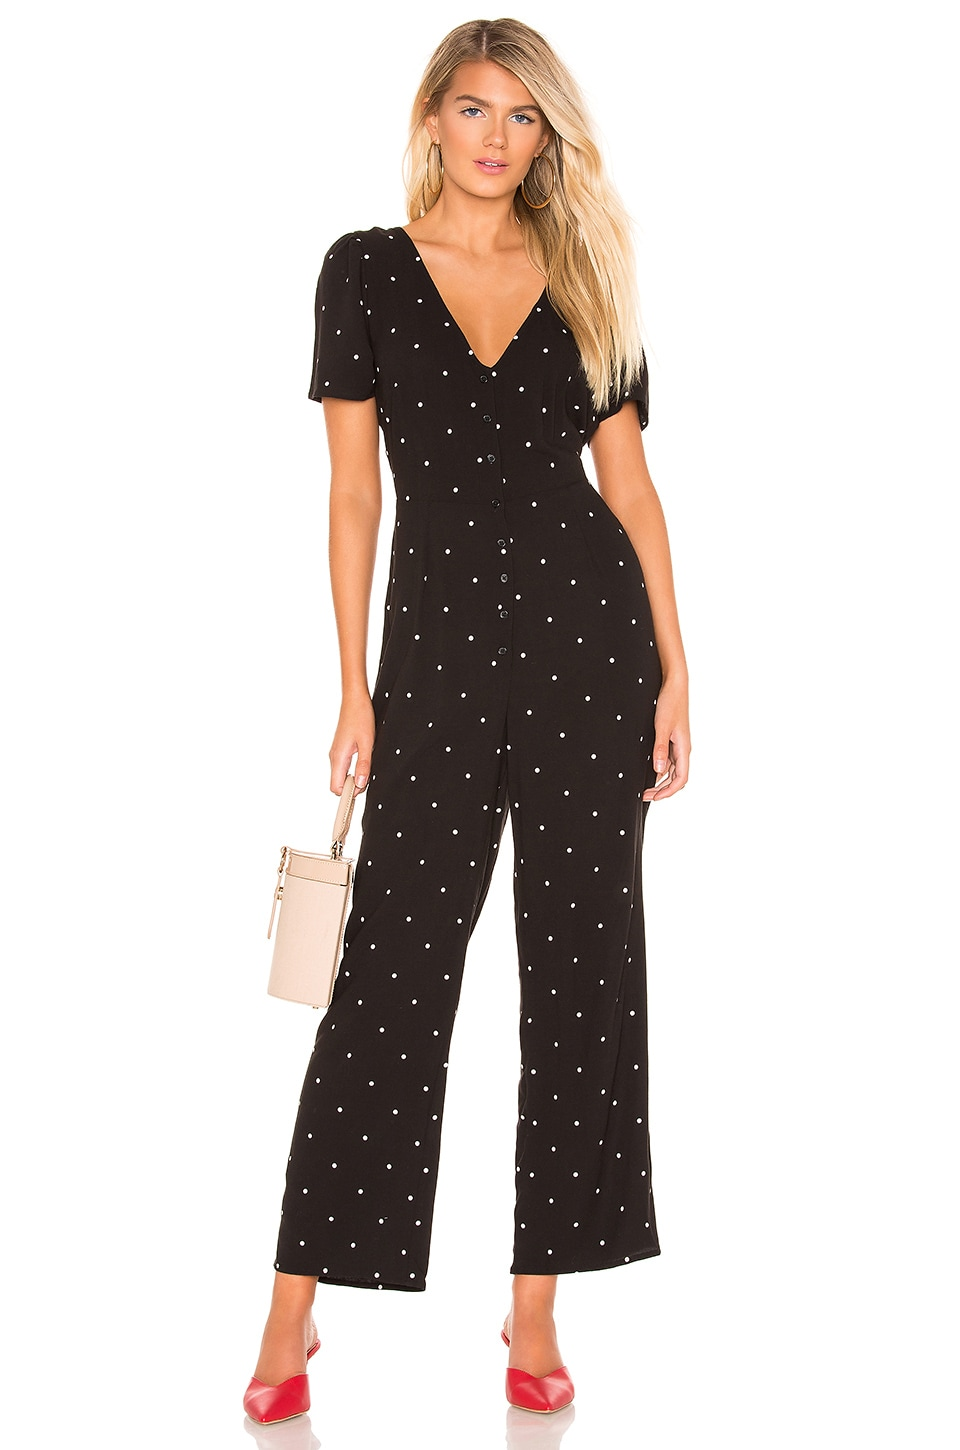 AMUSE SOCIETY On The Bright Side Jumpsuit in Black